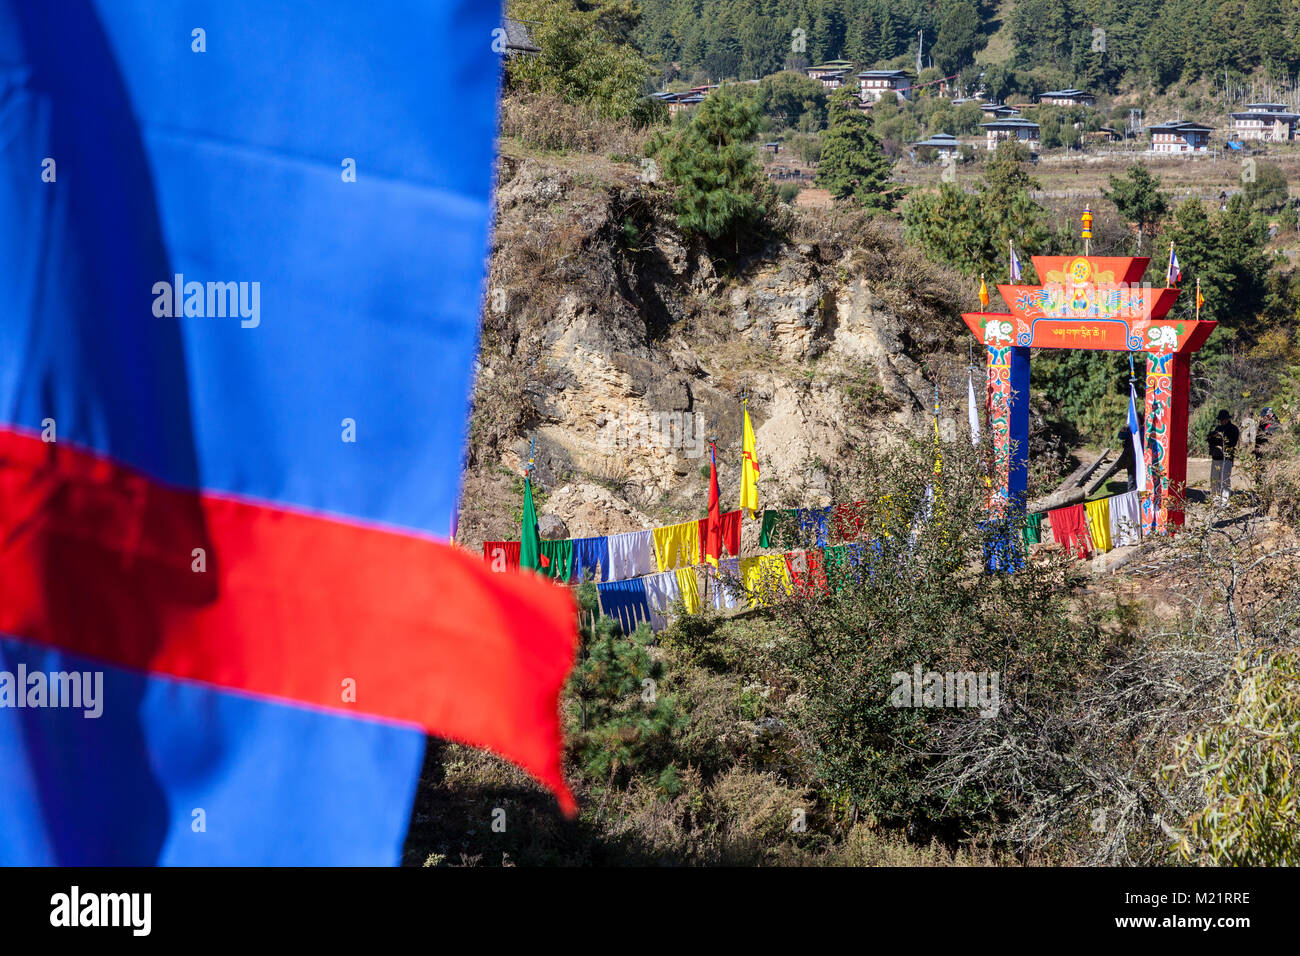 Prakhar Lhakhang, Bumthang, Bhutan.   Gate at Beginning of Final Pathway Leading to the Monastery, Decorated for - Stock Image